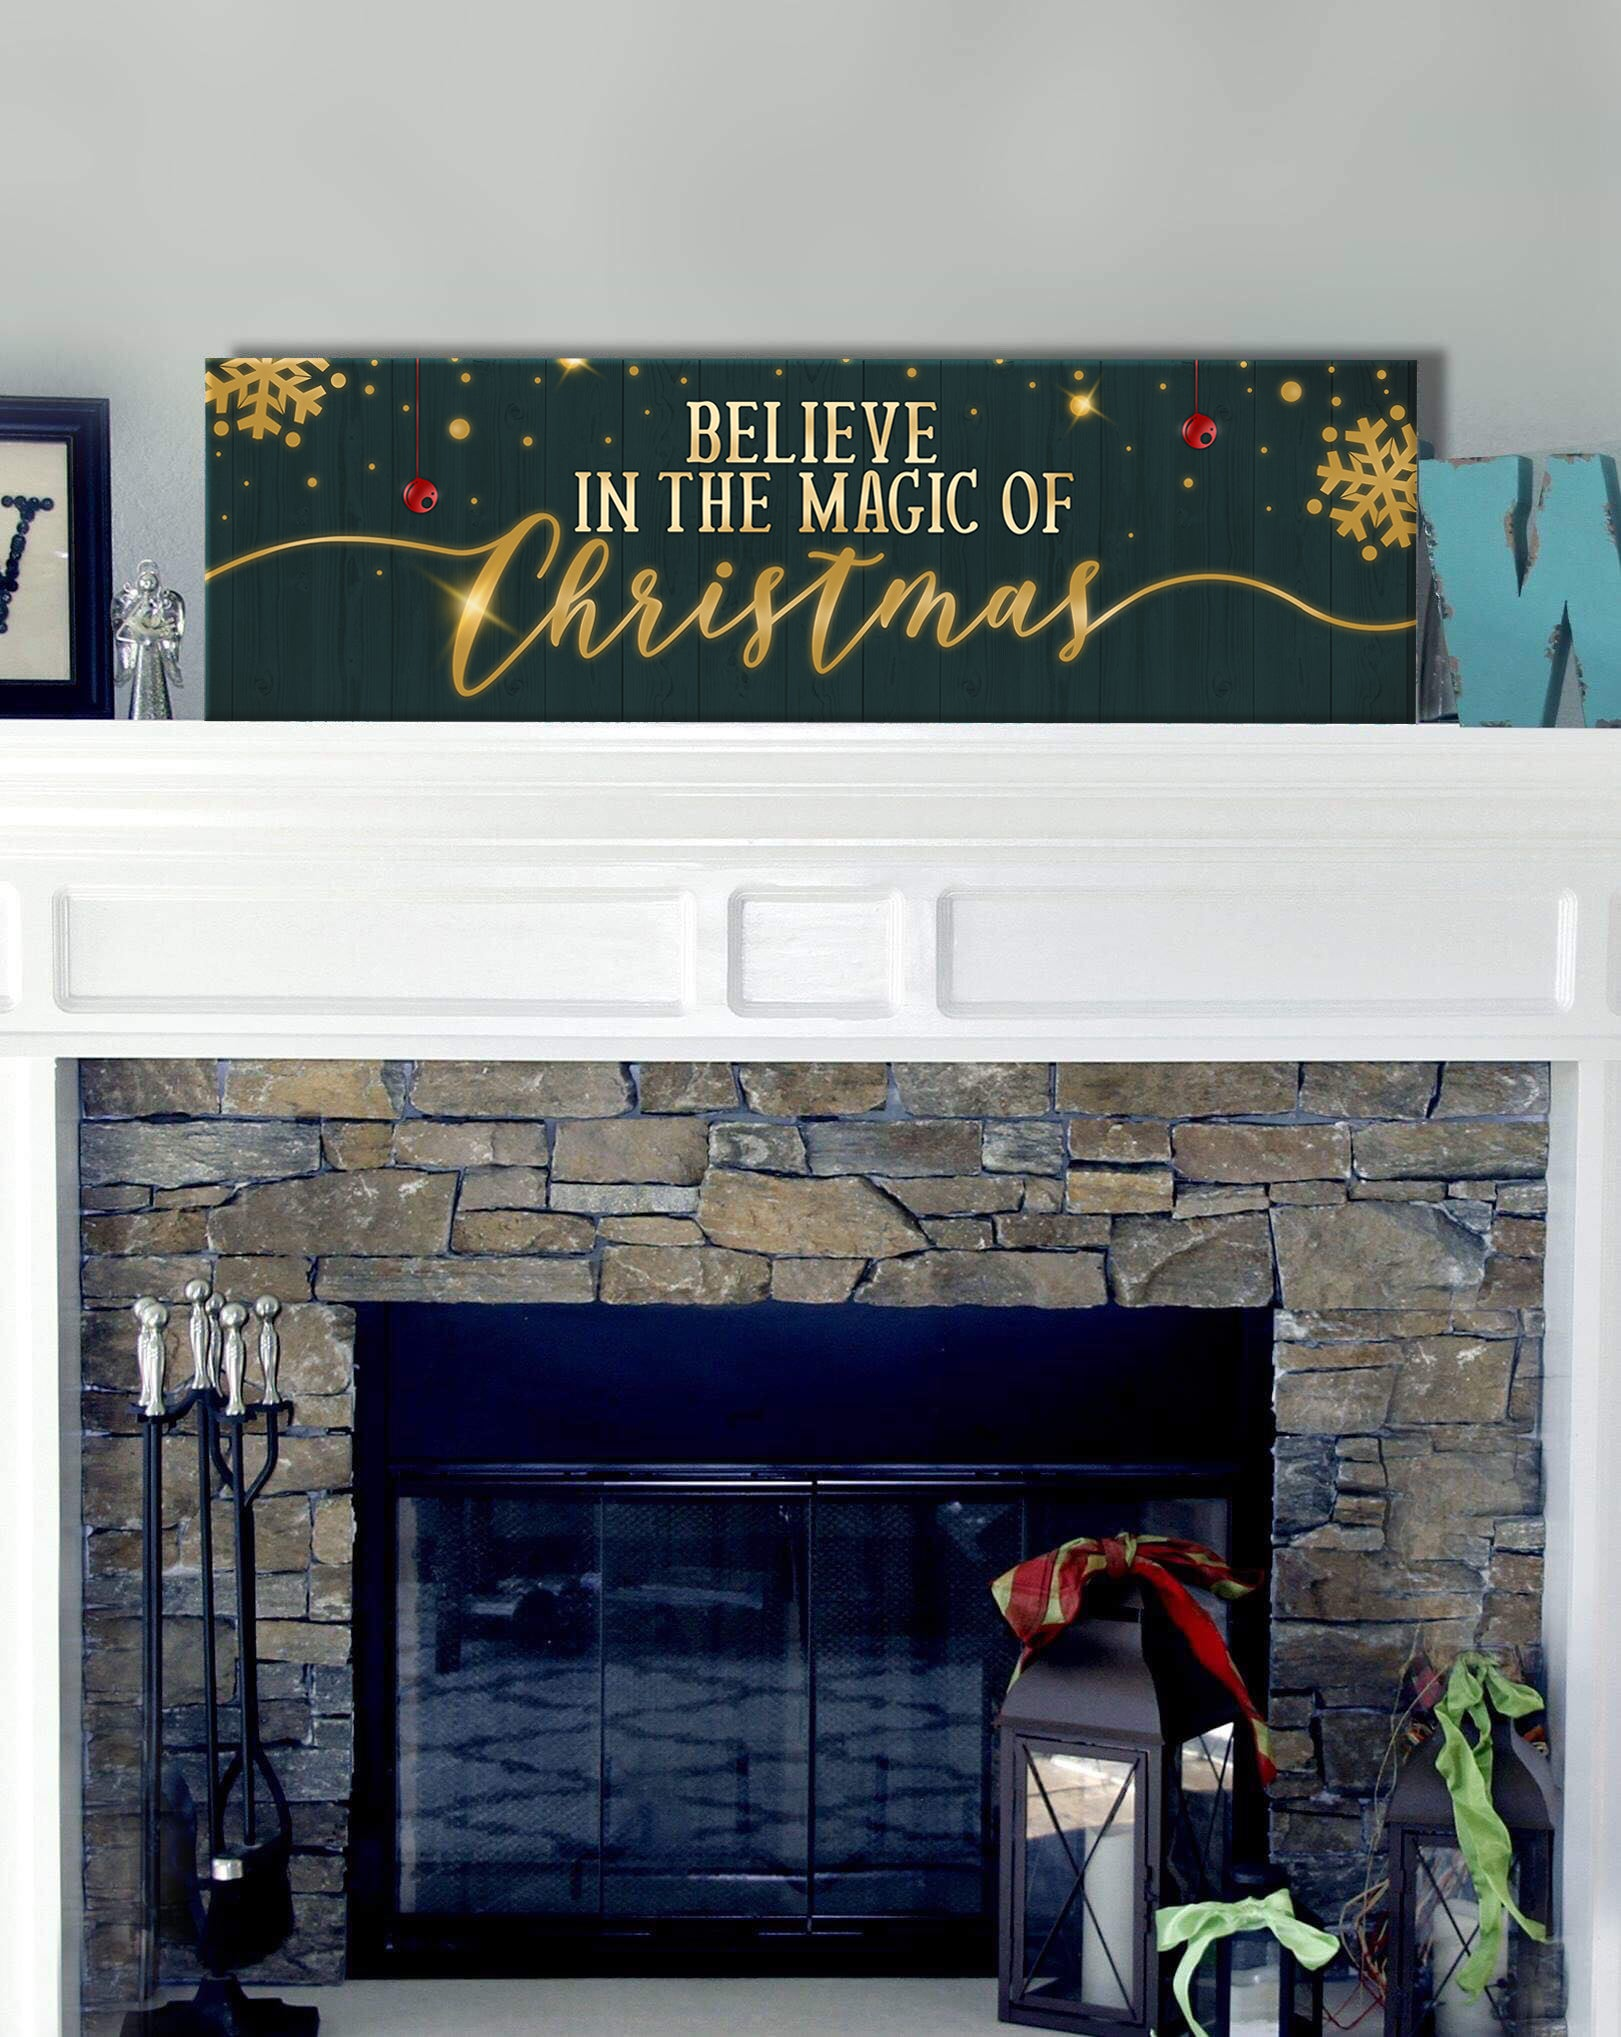 Holiday Decor Wall Art: Believe In The Magic Of Christmas (Wood Frame Ready To Hang)